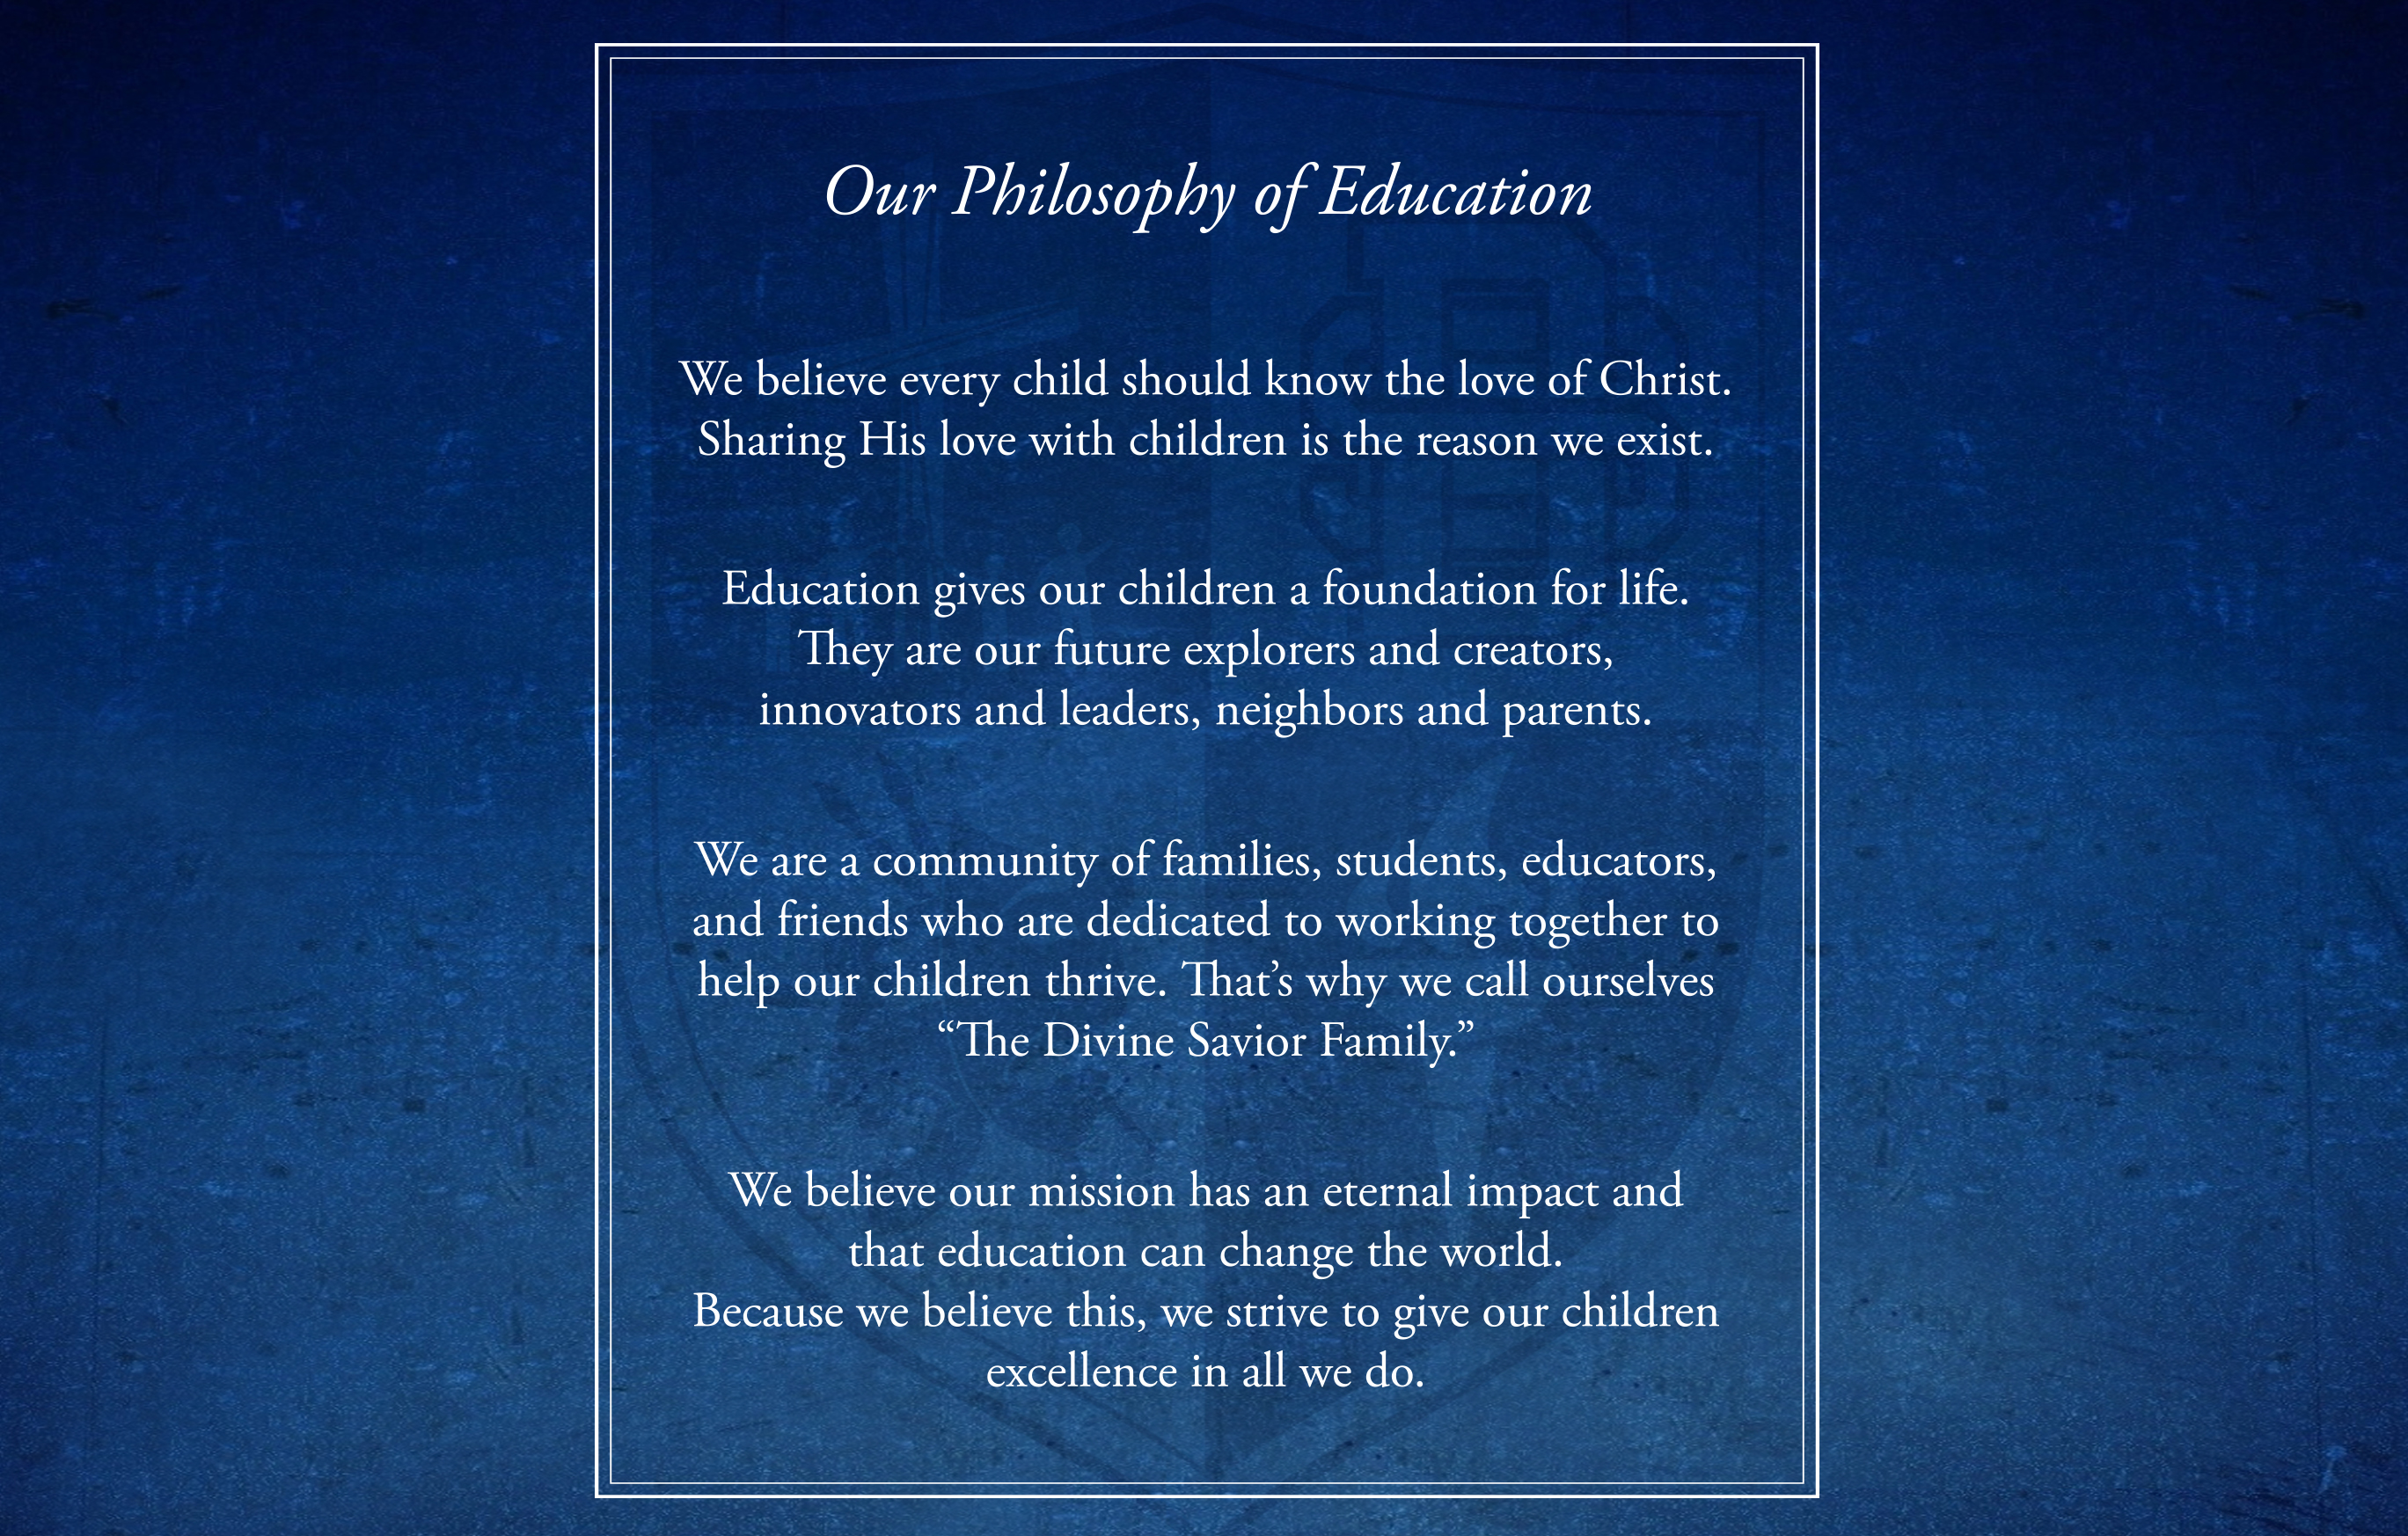 Our Philosophy of Education